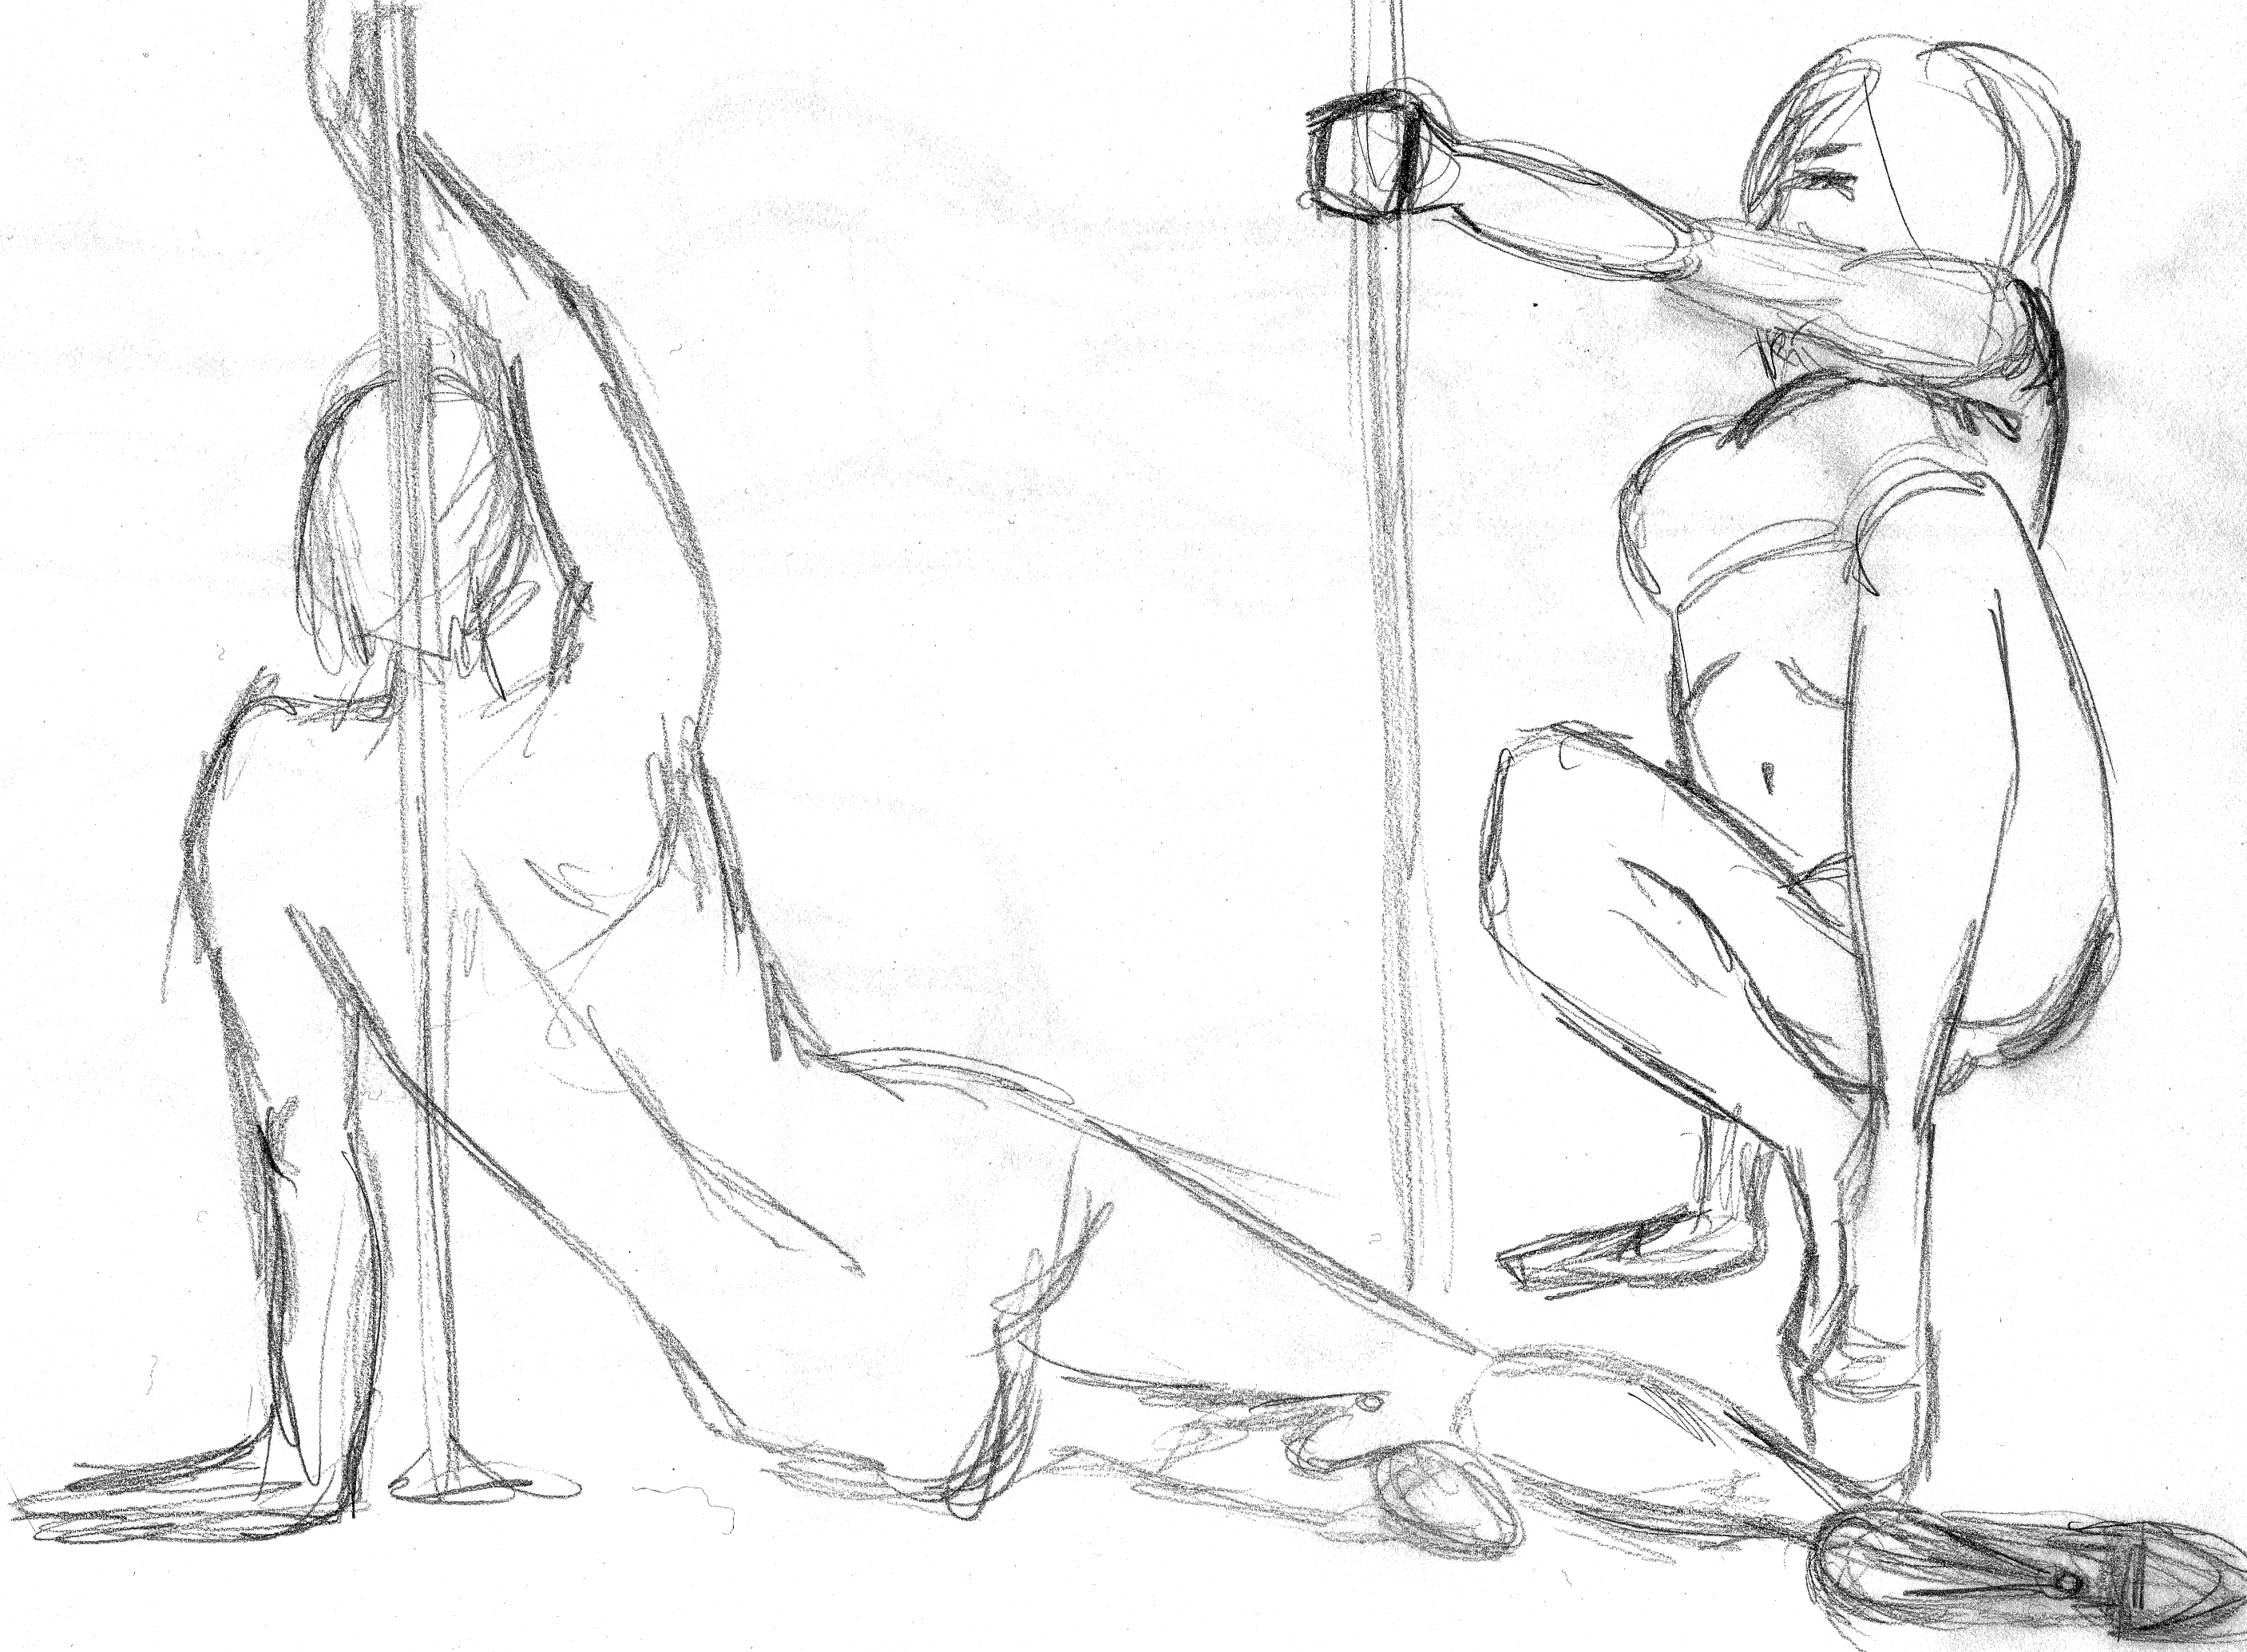 Pole Dance - Pencil Sketch